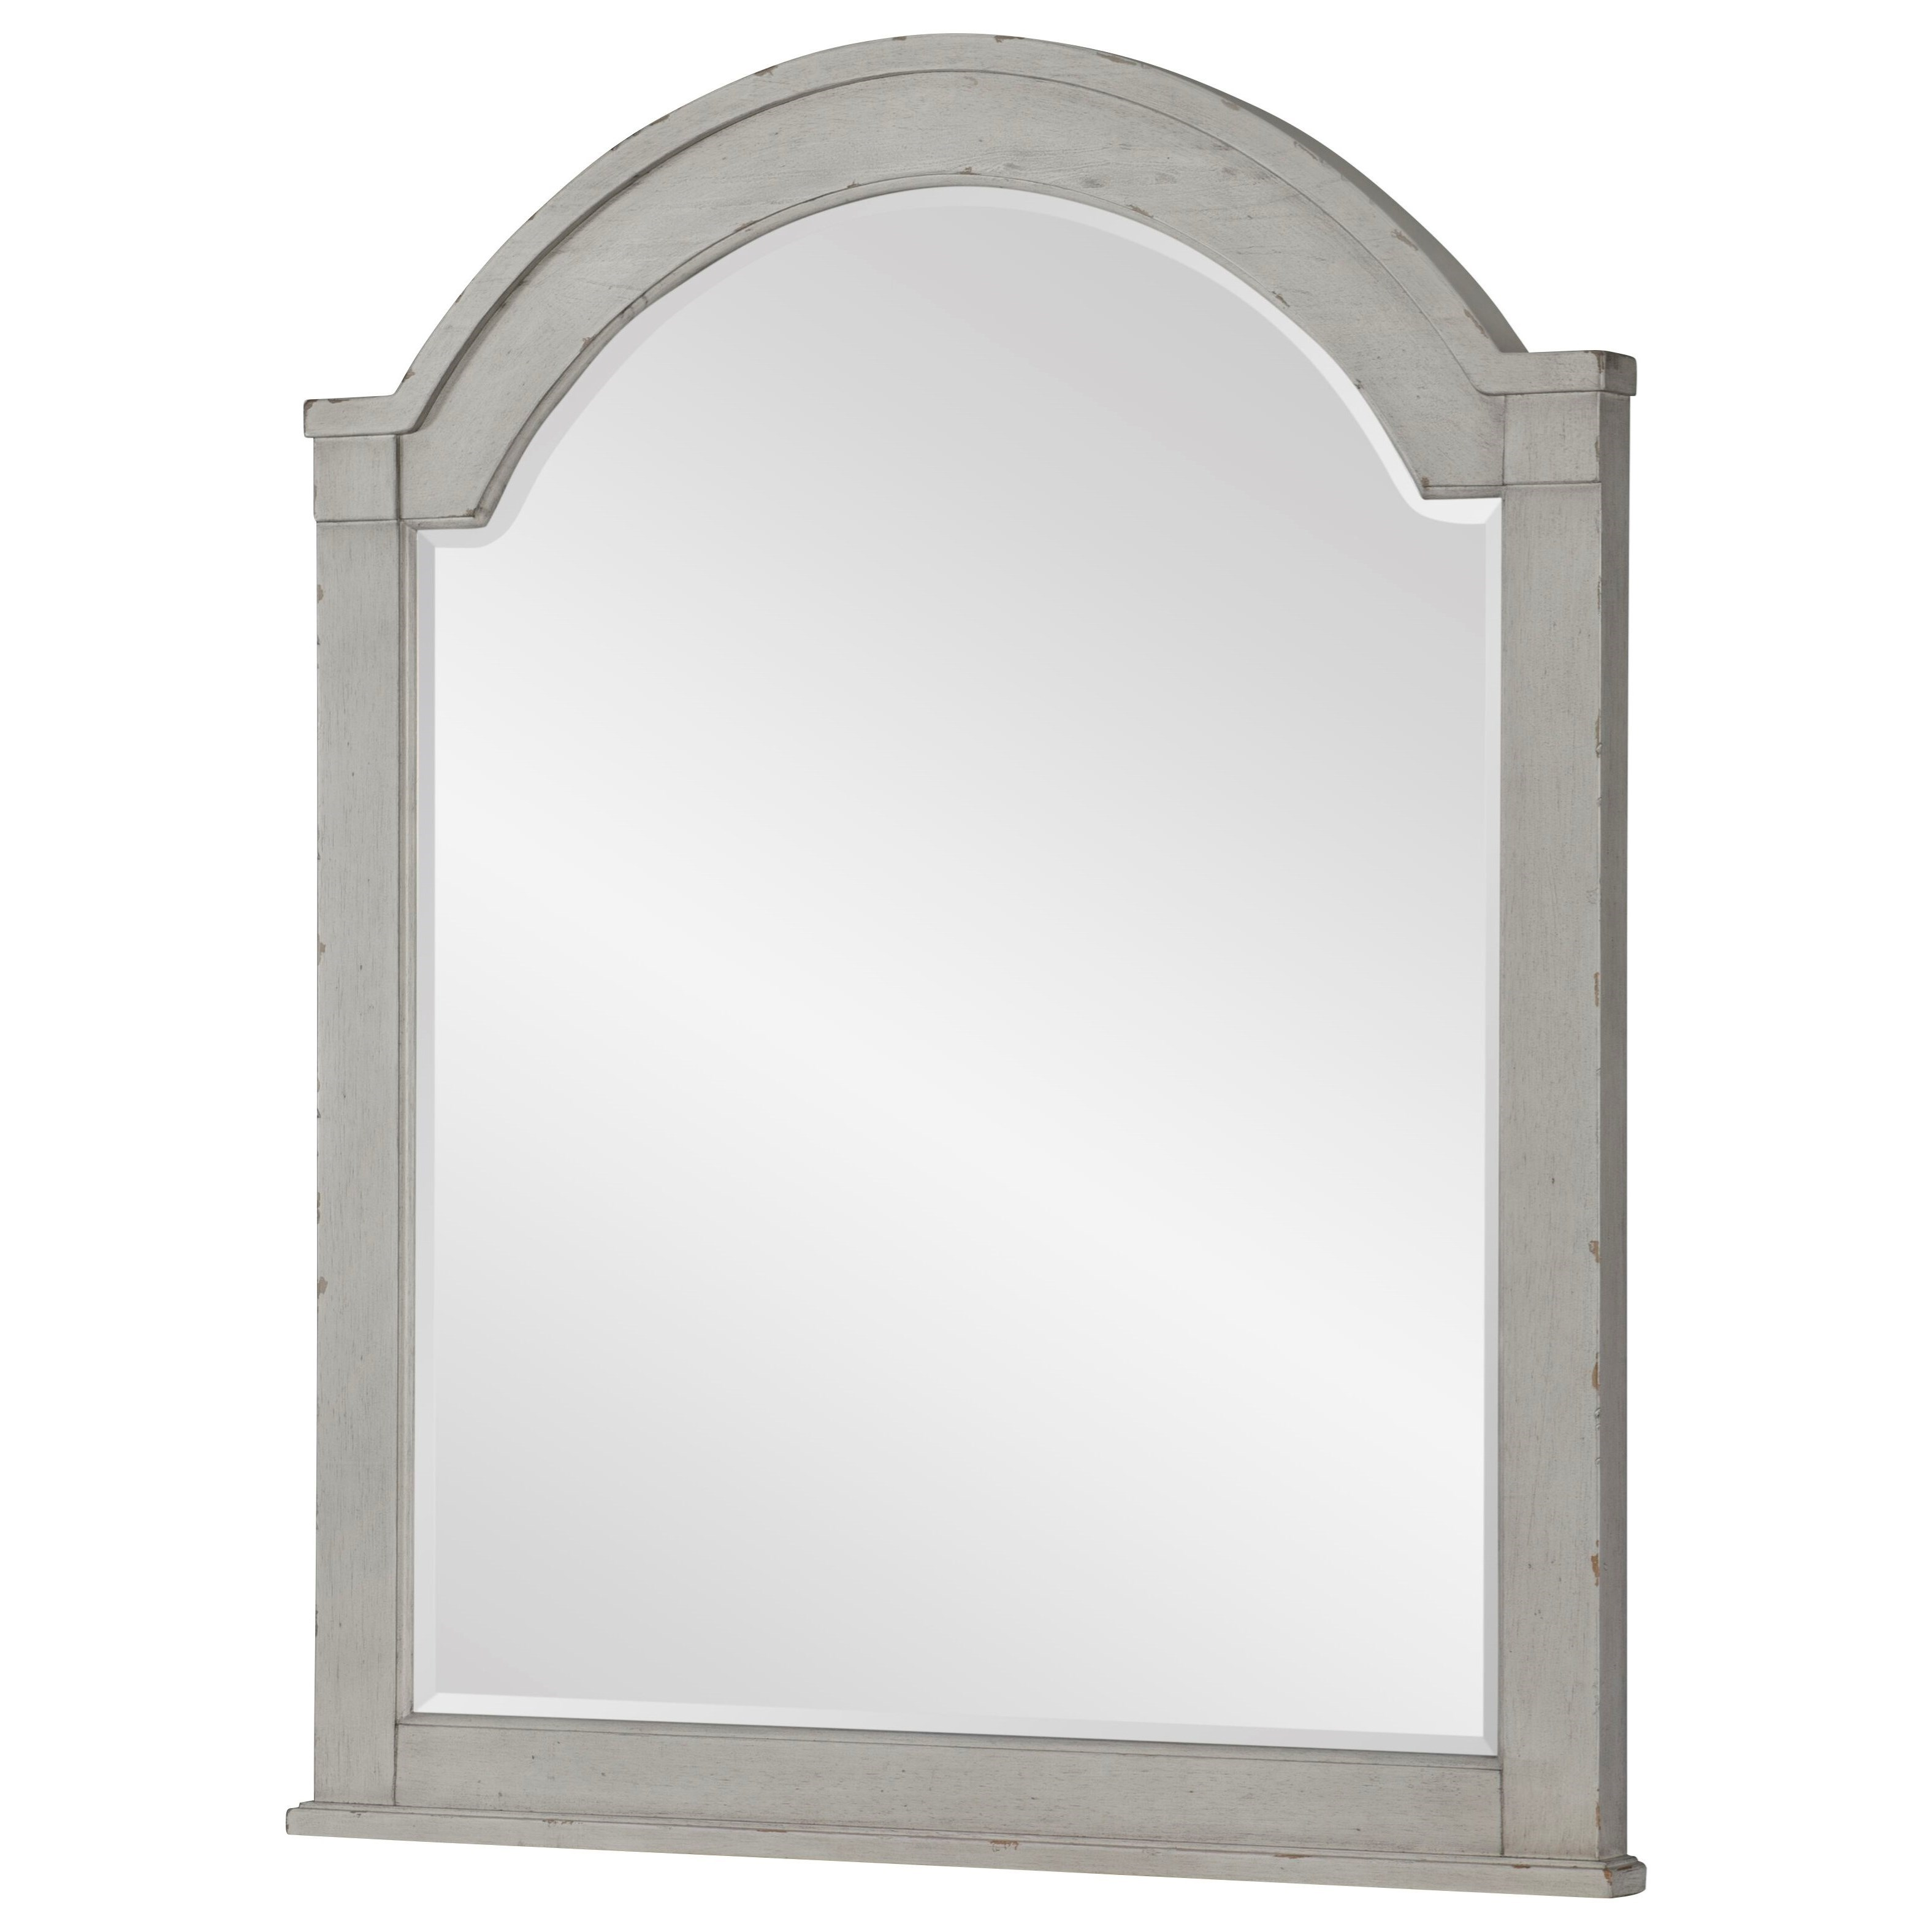 Belhaven Arched Dresser Mirror by Legacy Classic at EFO Furniture Outlet